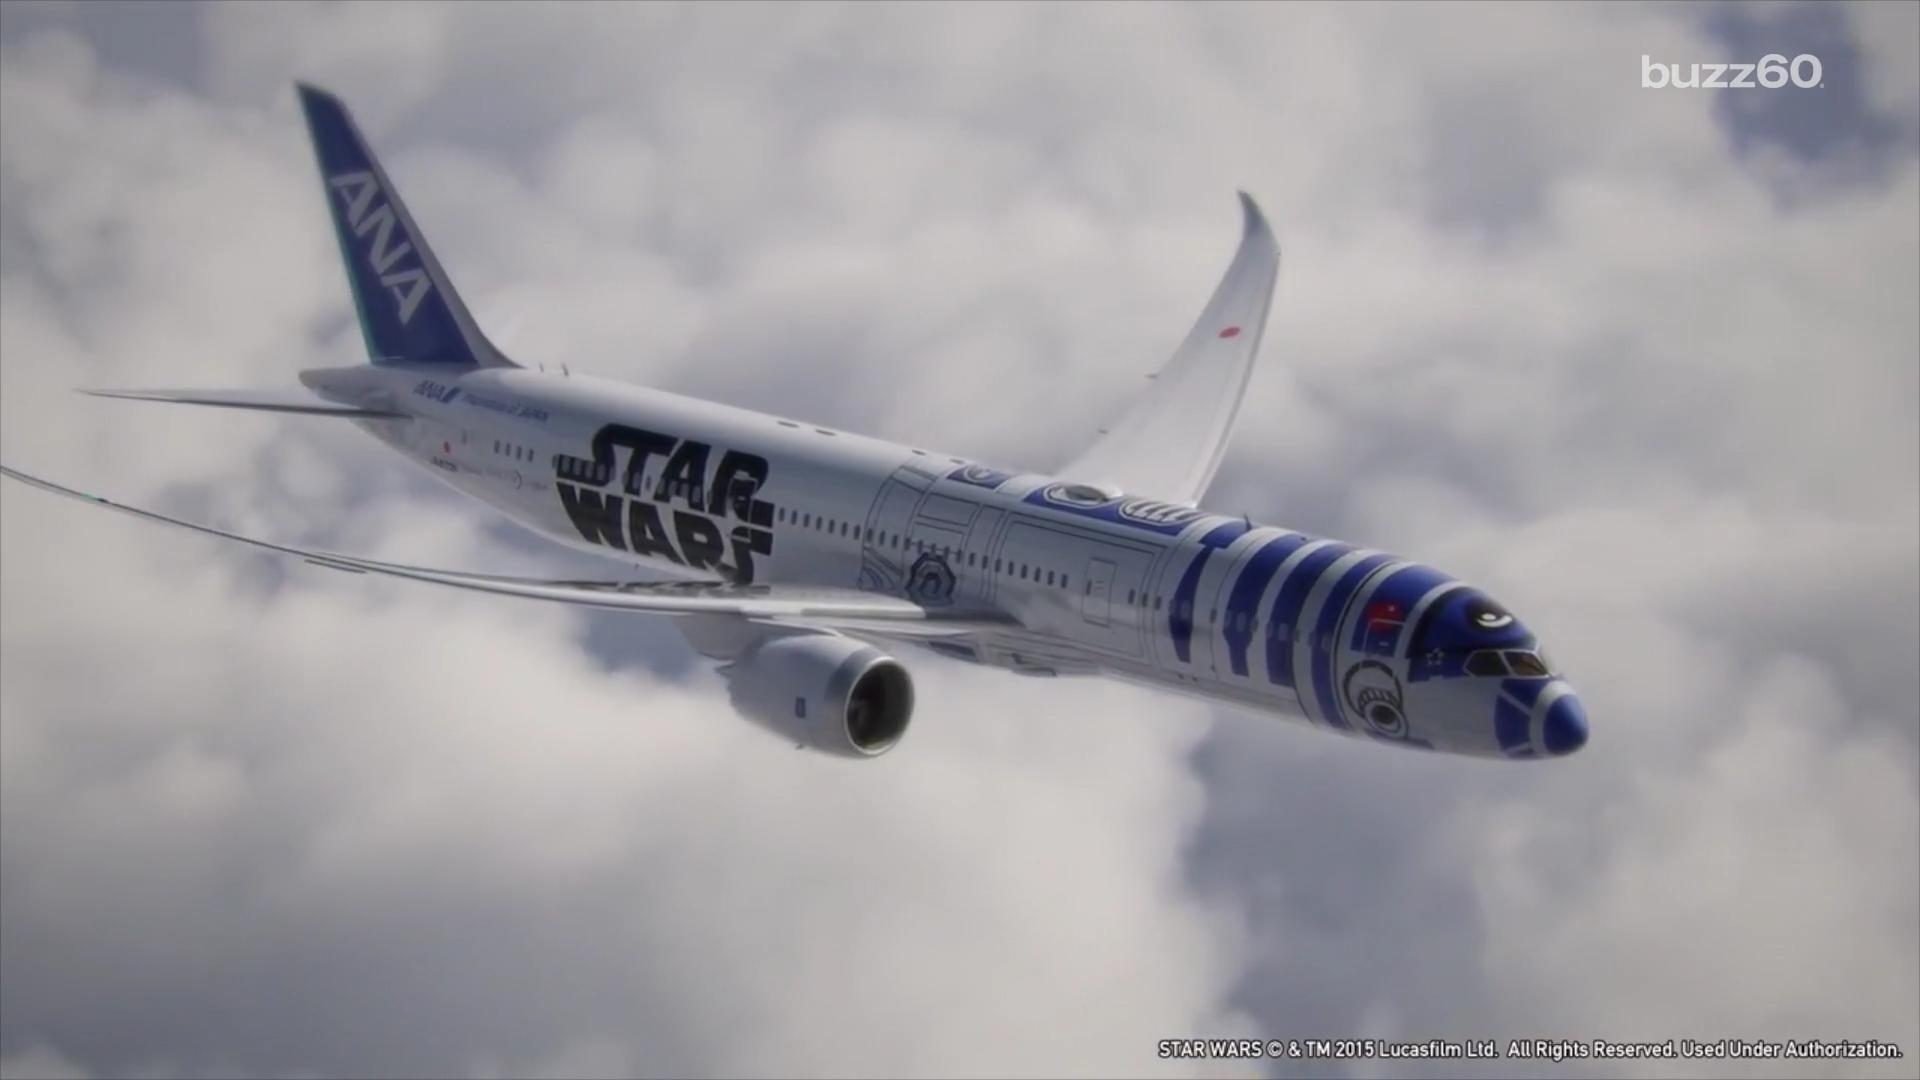 Star Wars themed airplanes have fans shooting for the Moon of Endor